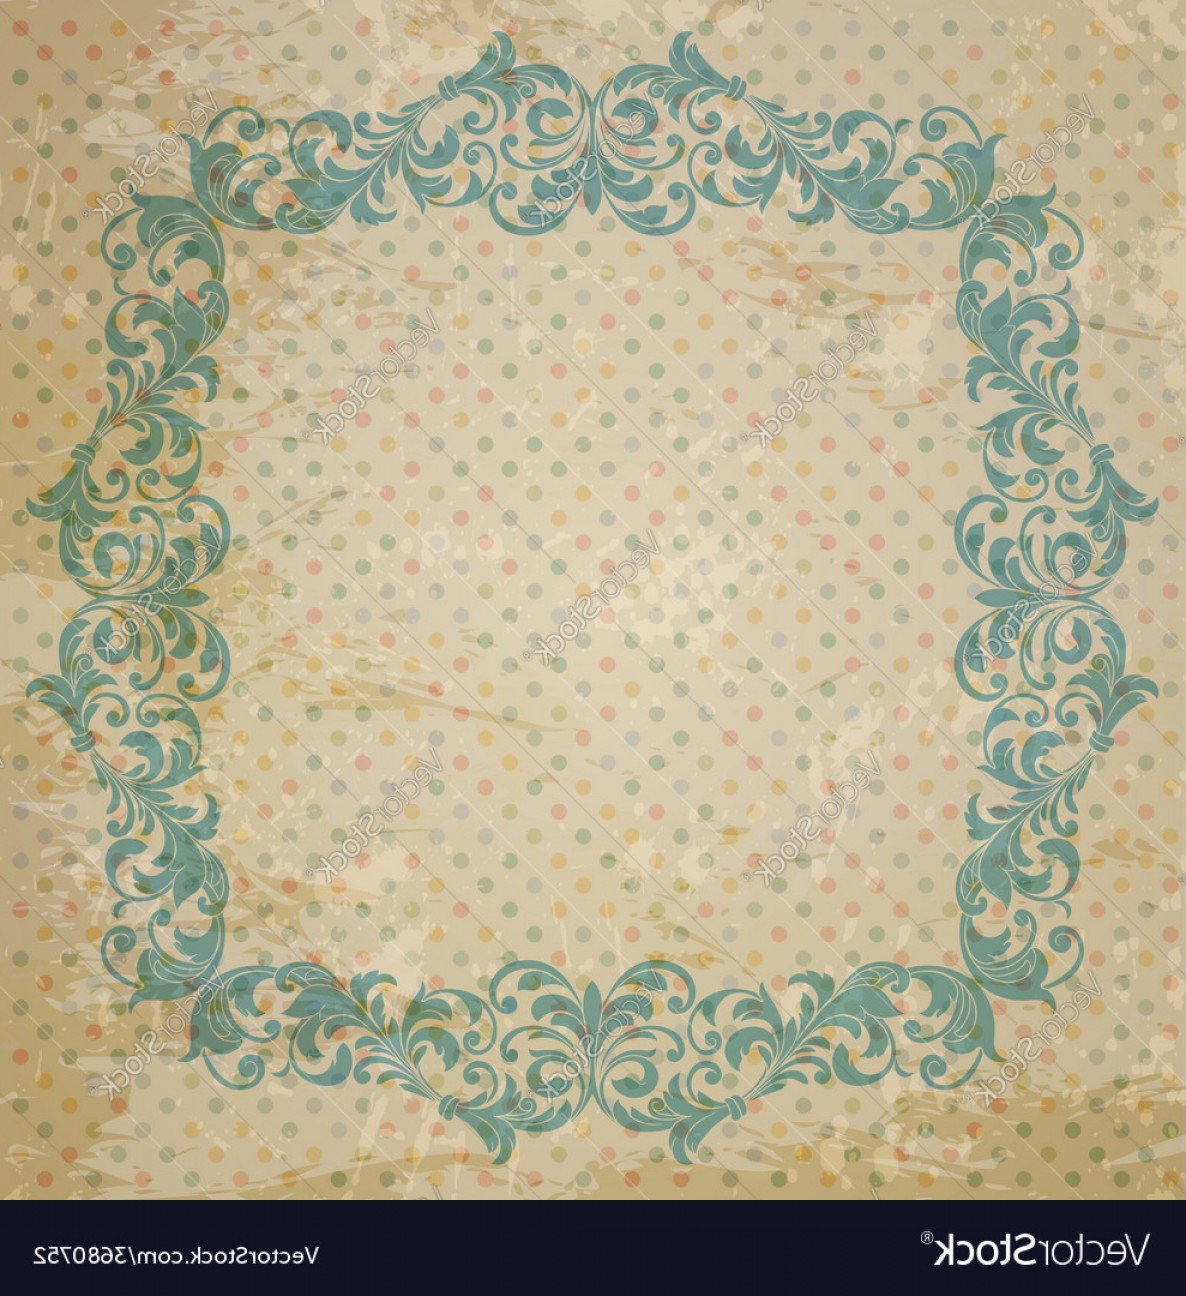 Aqua Victorian Vectors: Ornate Element In Victorian Style Vector